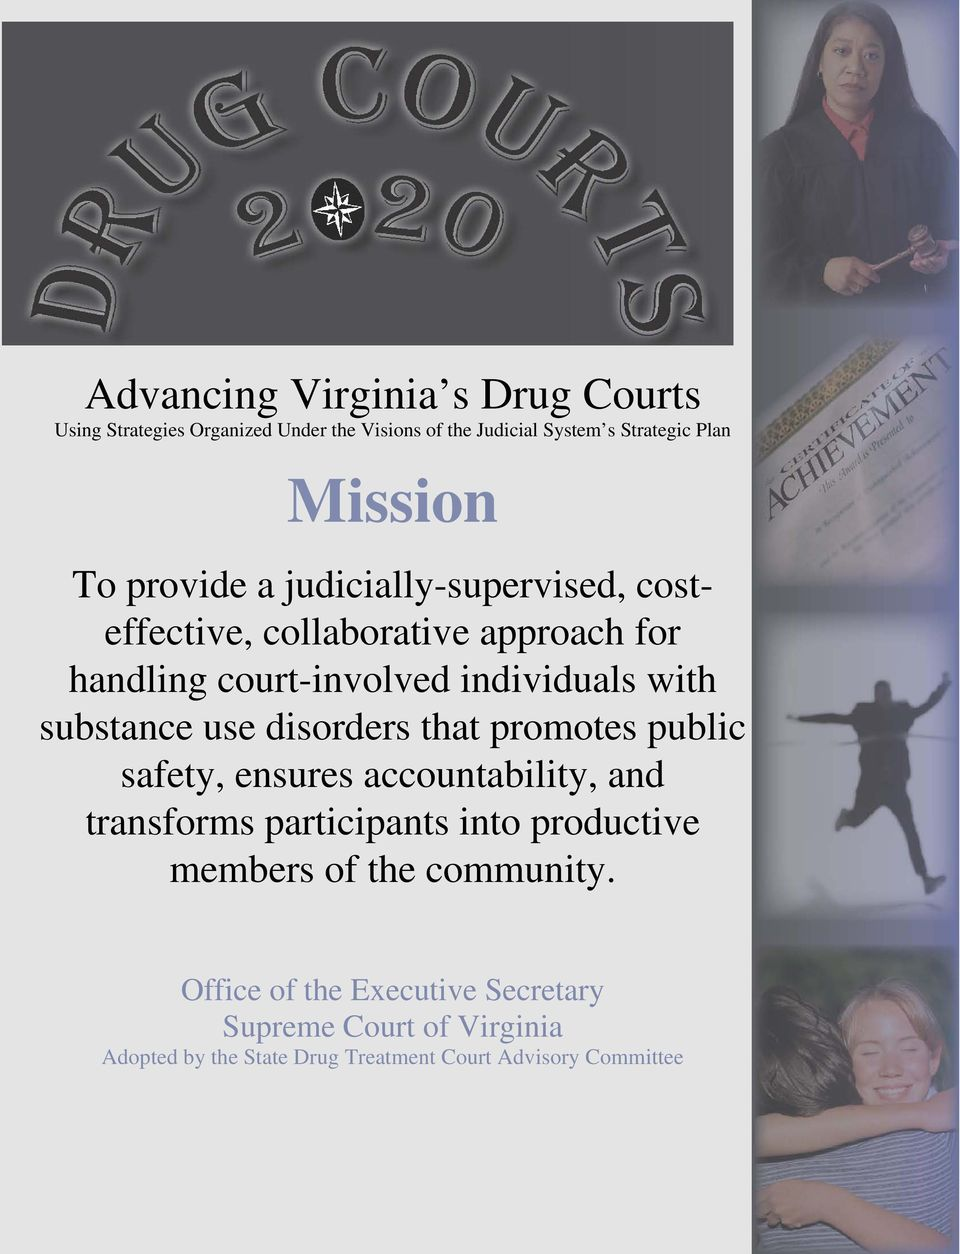 substance use disorders that promotes public safety, ensures accountability, and transforms participants into productive